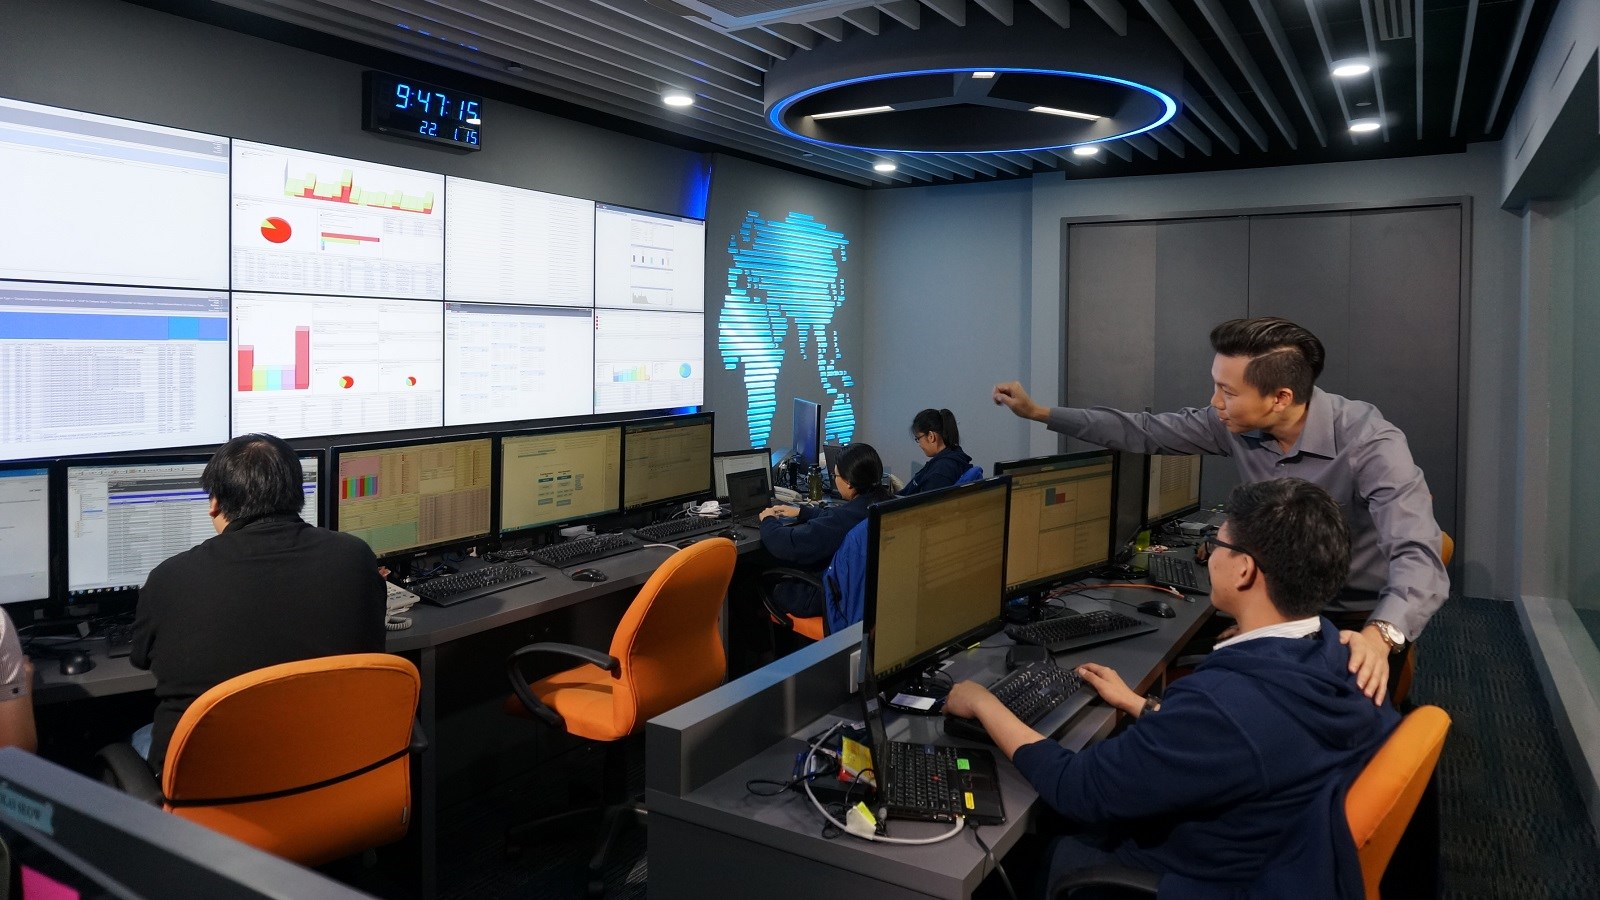 Cybersecurity Command and Control Centre